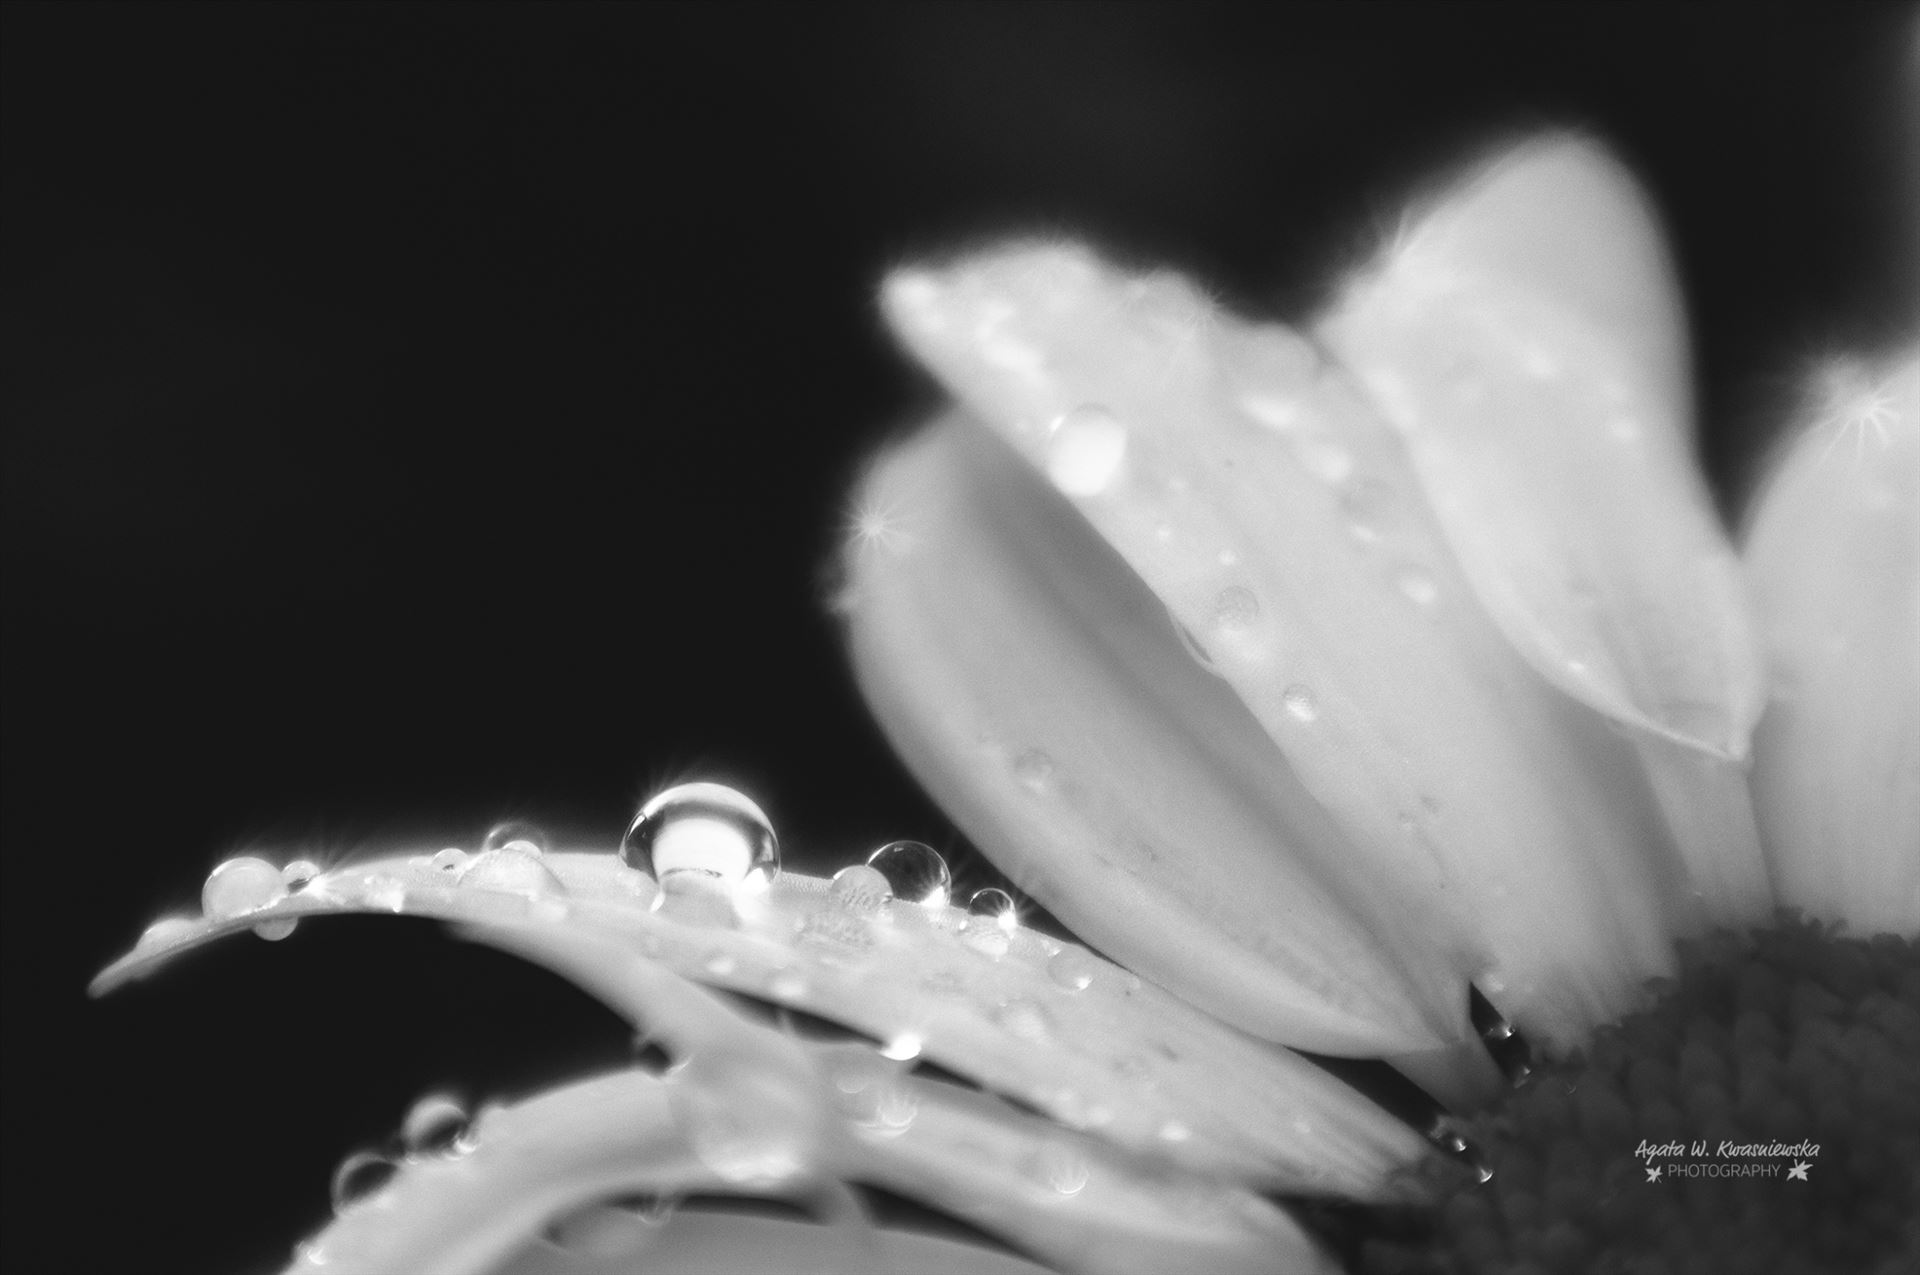 Morning dew -  by Agata W. Kwasniewska Photography